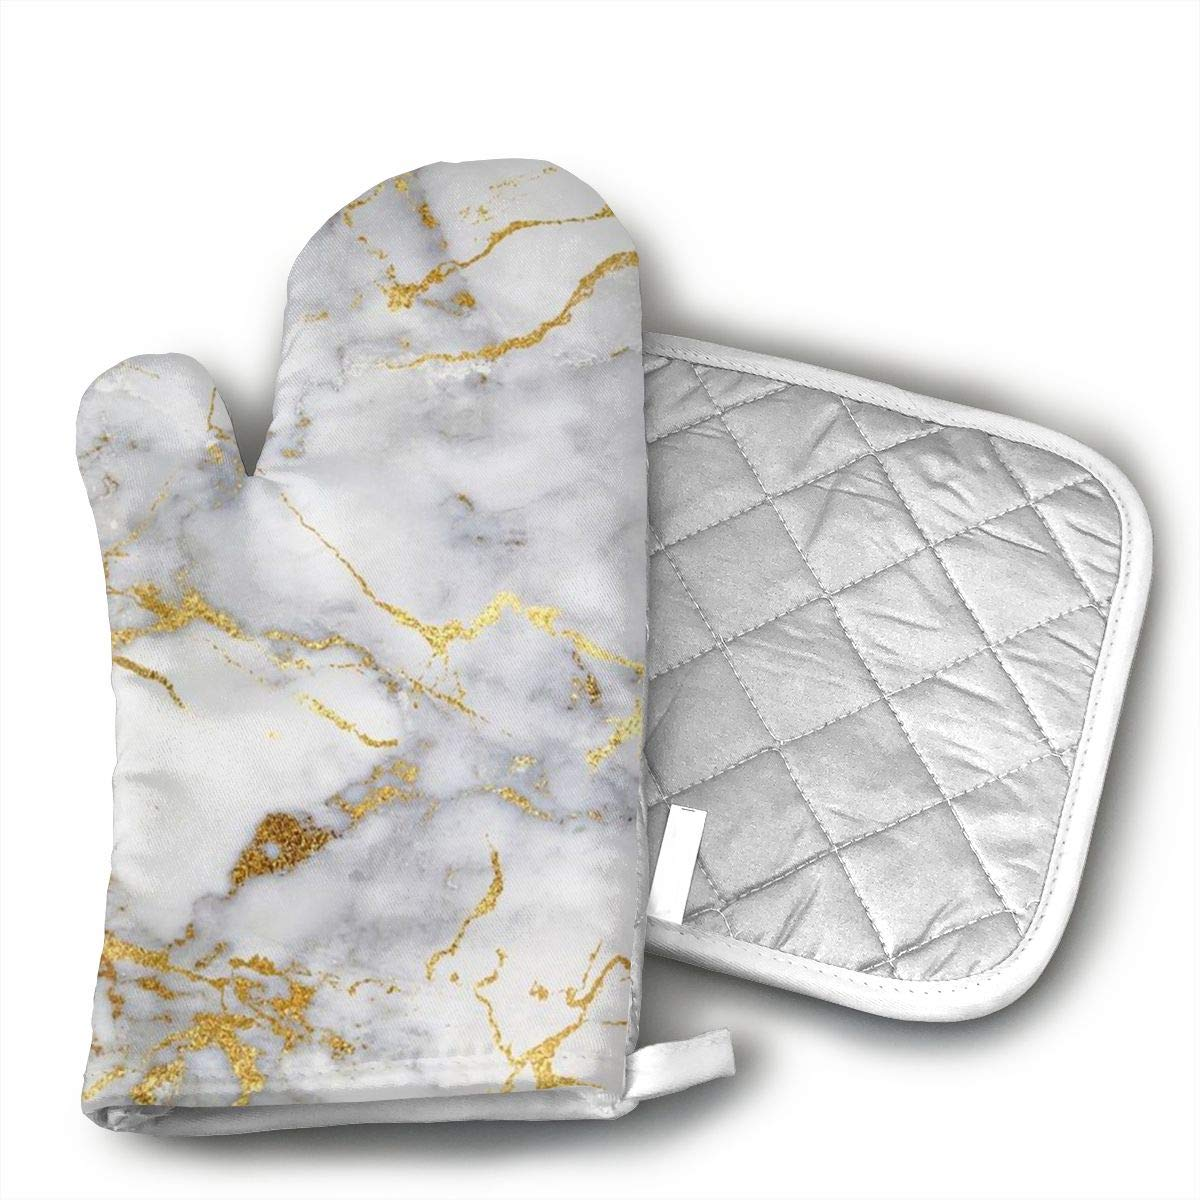 BenteLi Gold Marble Oven Mitts,Professional Heat Resistant Microwave Oven Insulation Thickening Gloves Soft Inner Lining Kitchen Cooking Mittens